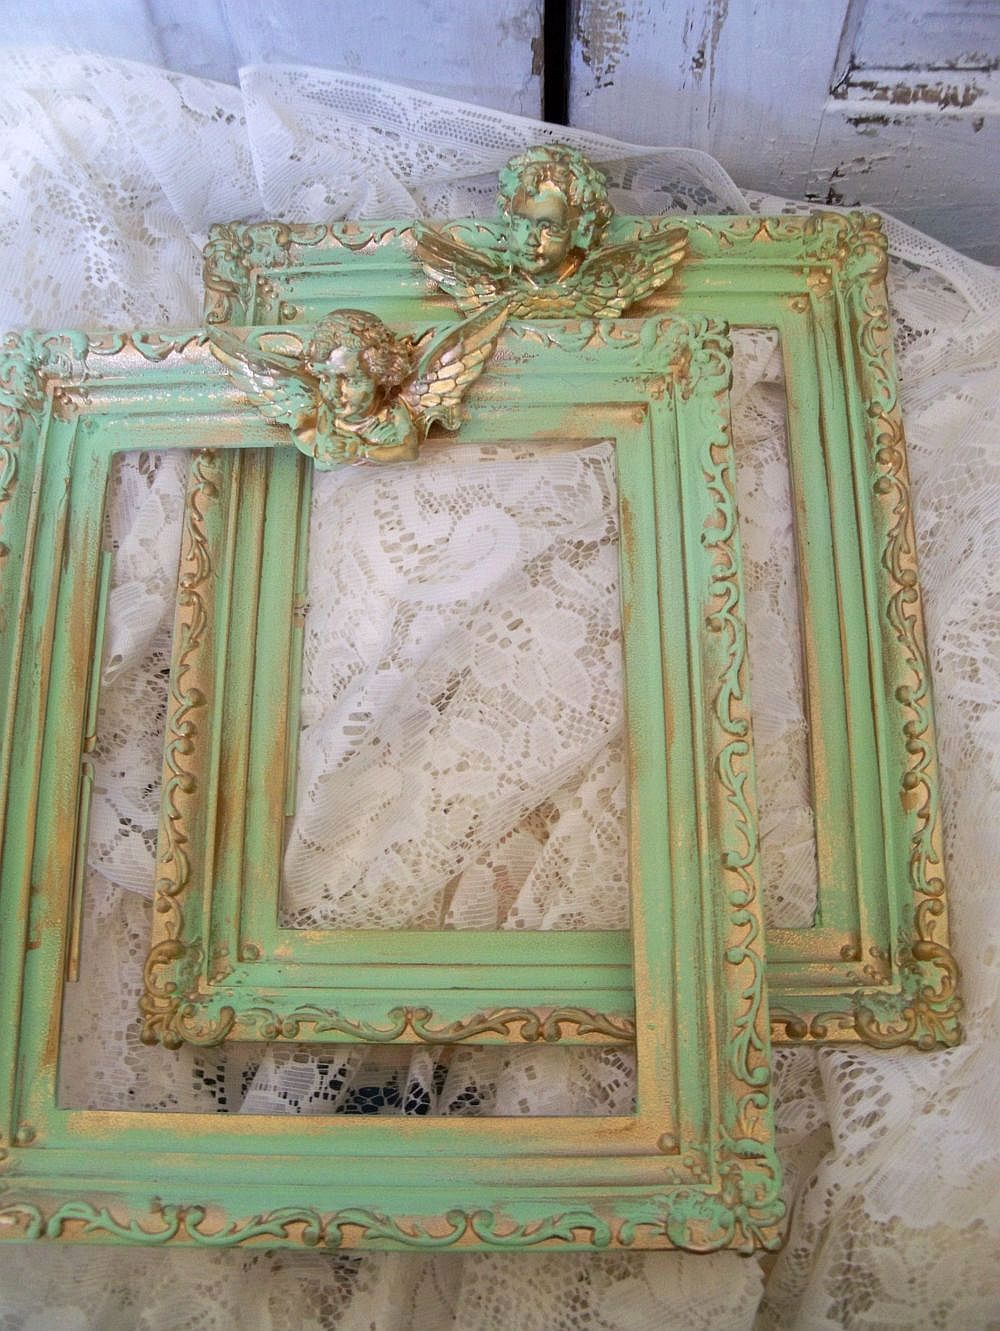 Shabby Chic Wall Decor Vintage Green Ornate Frames Adorned With Cherubs Shabby Chic Wall